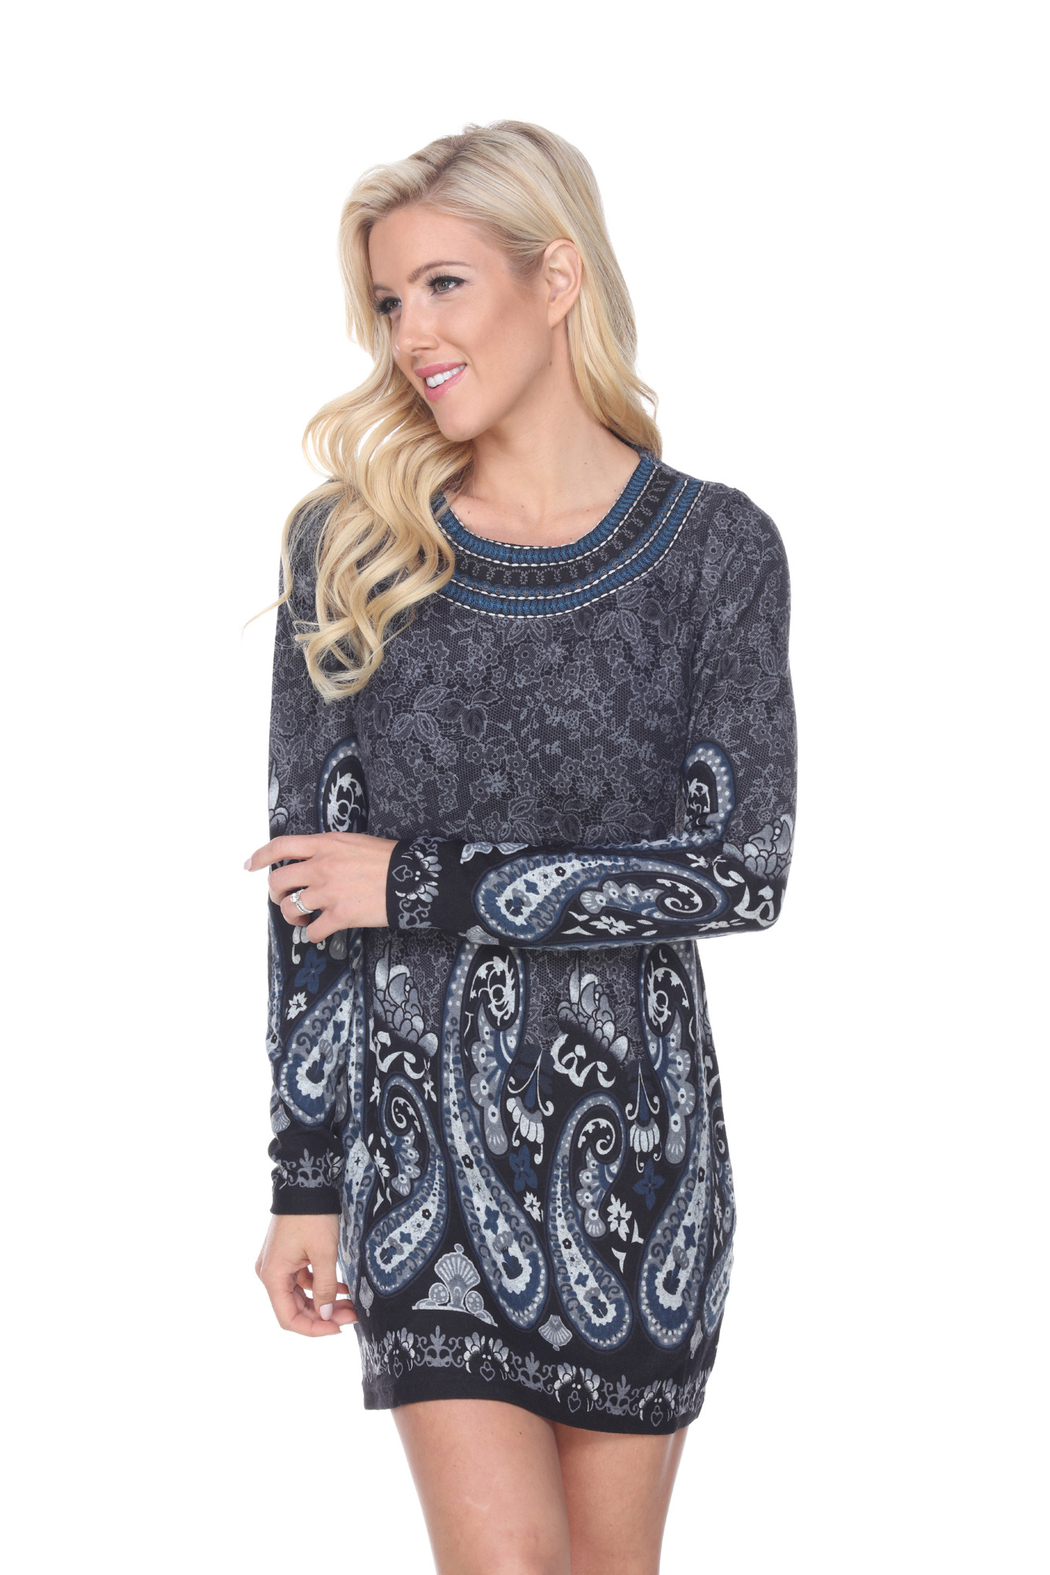 WhiteMark White Mark's Paisley Print Embroidered Sweater Dress - Side Cropped Image